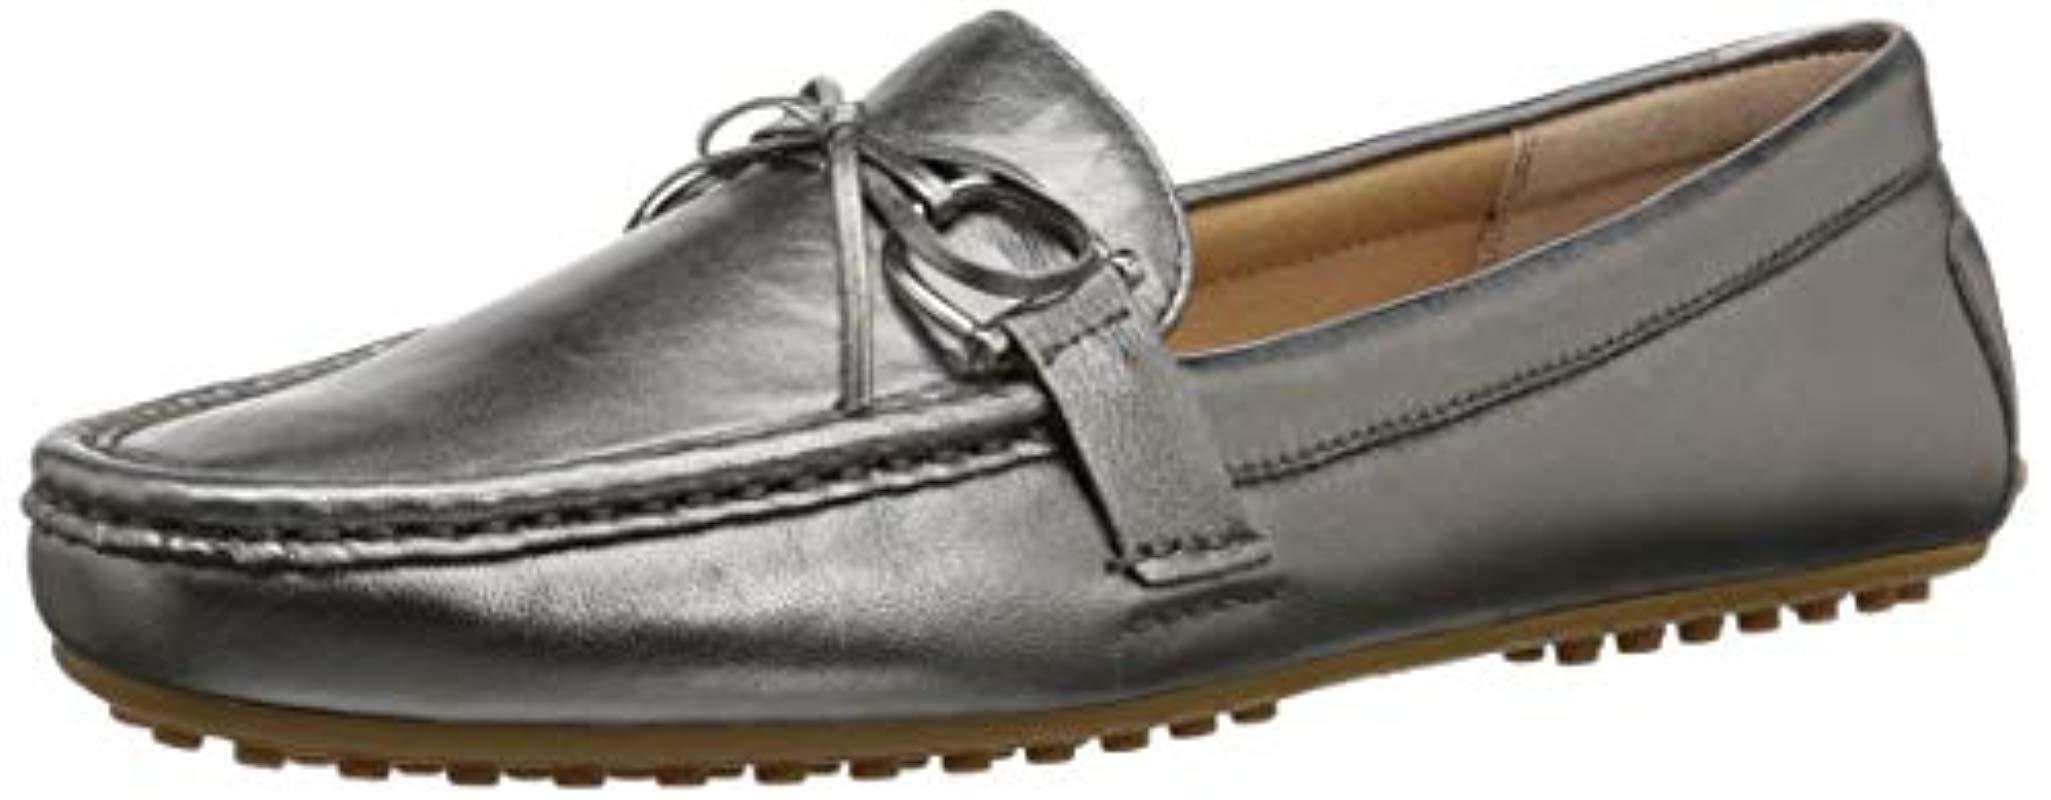 0667777b71f Lyst - Lauren by Ralph Lauren Briley Ii Driving Style Loafer in Gray